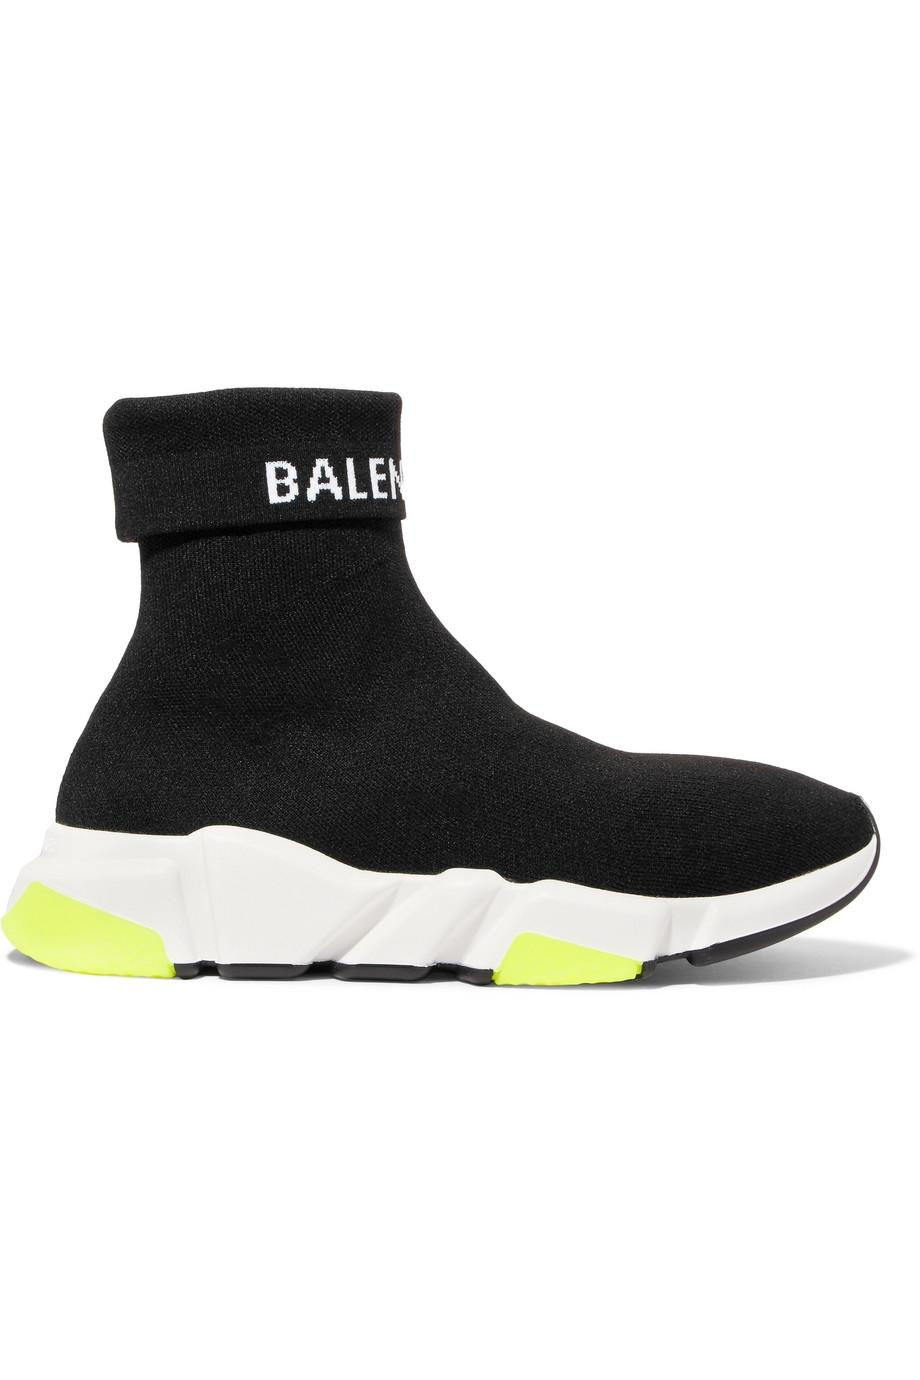 Balenciaga Black Speed Logo-intarsia Stretch-knit High-top Sneakers It37 Sneakers Size EU 37 (Approx. US 7) Regular (M, B)